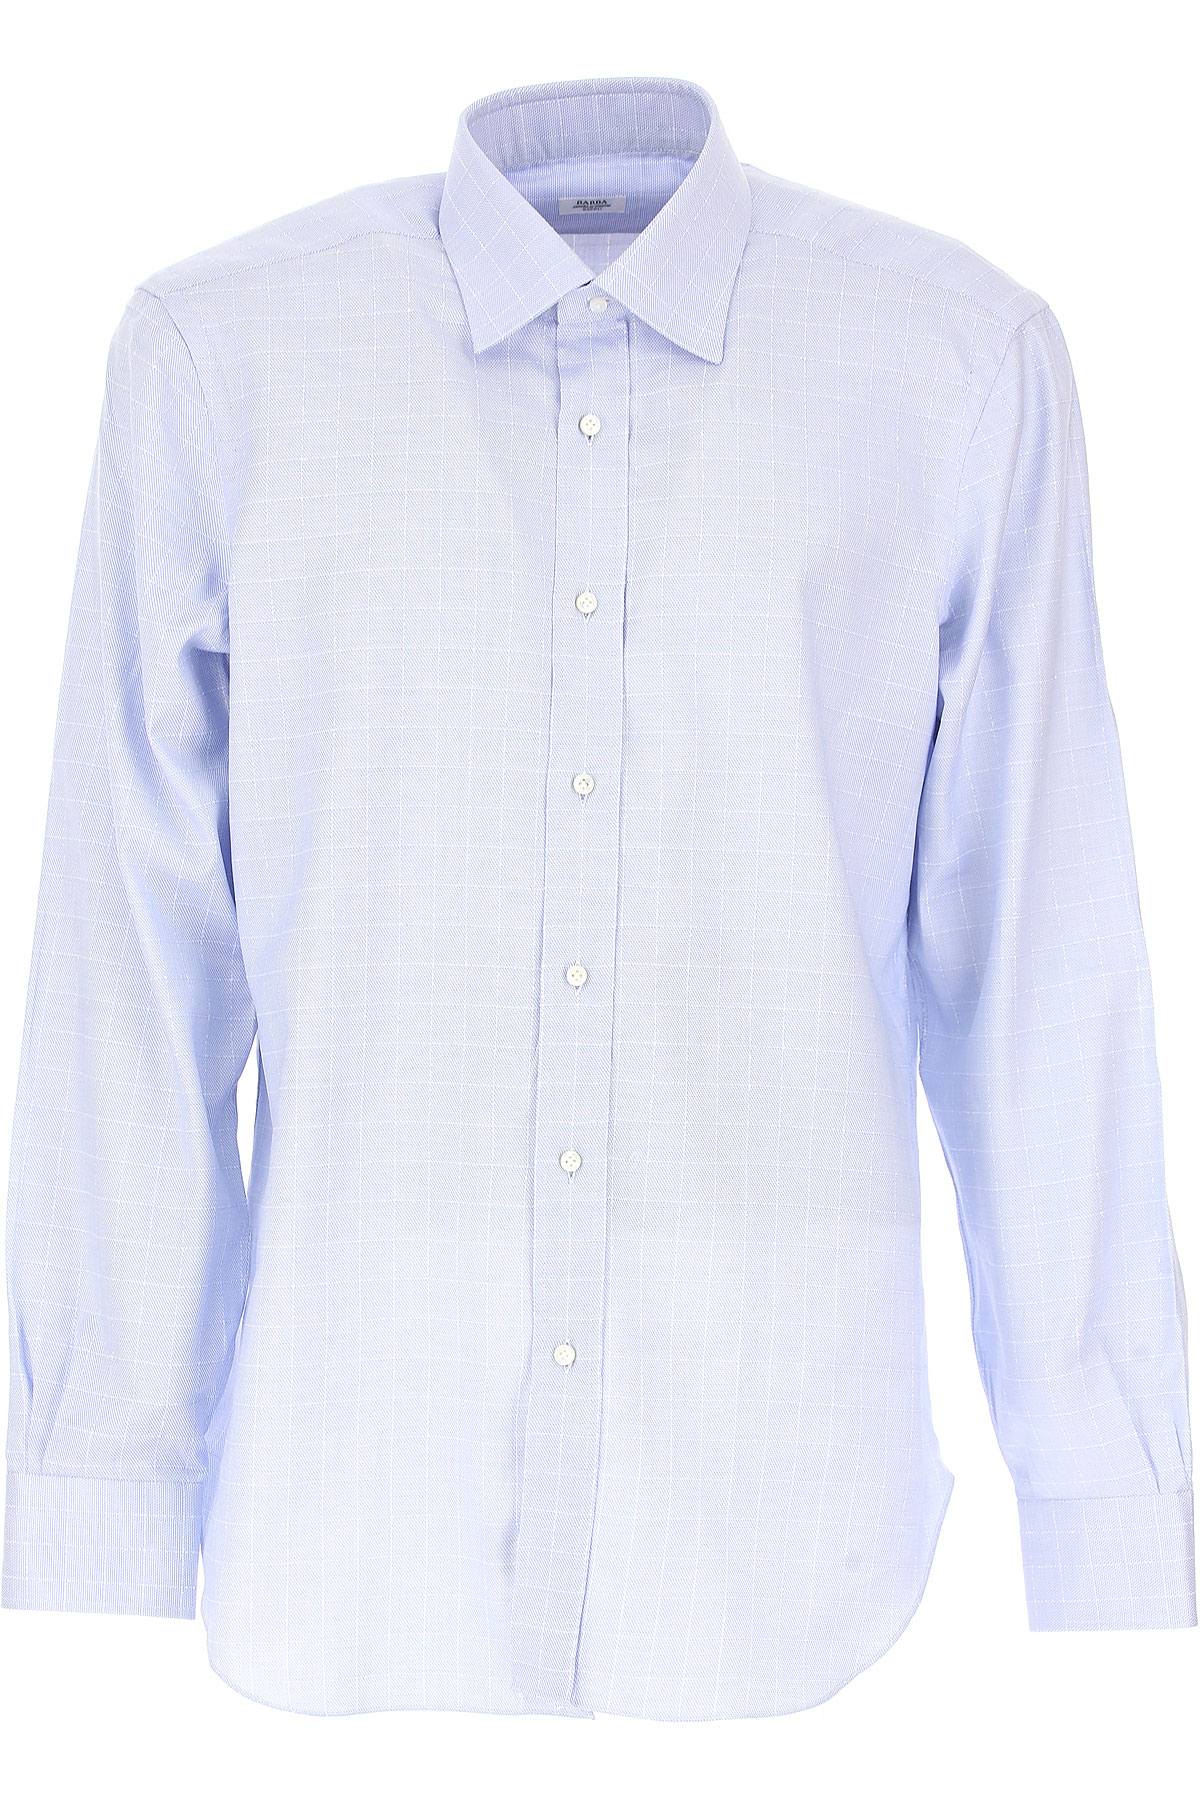 Image of Barba Shirt for Men, Blue, Cotton, 2017, 15.75 16 16.5